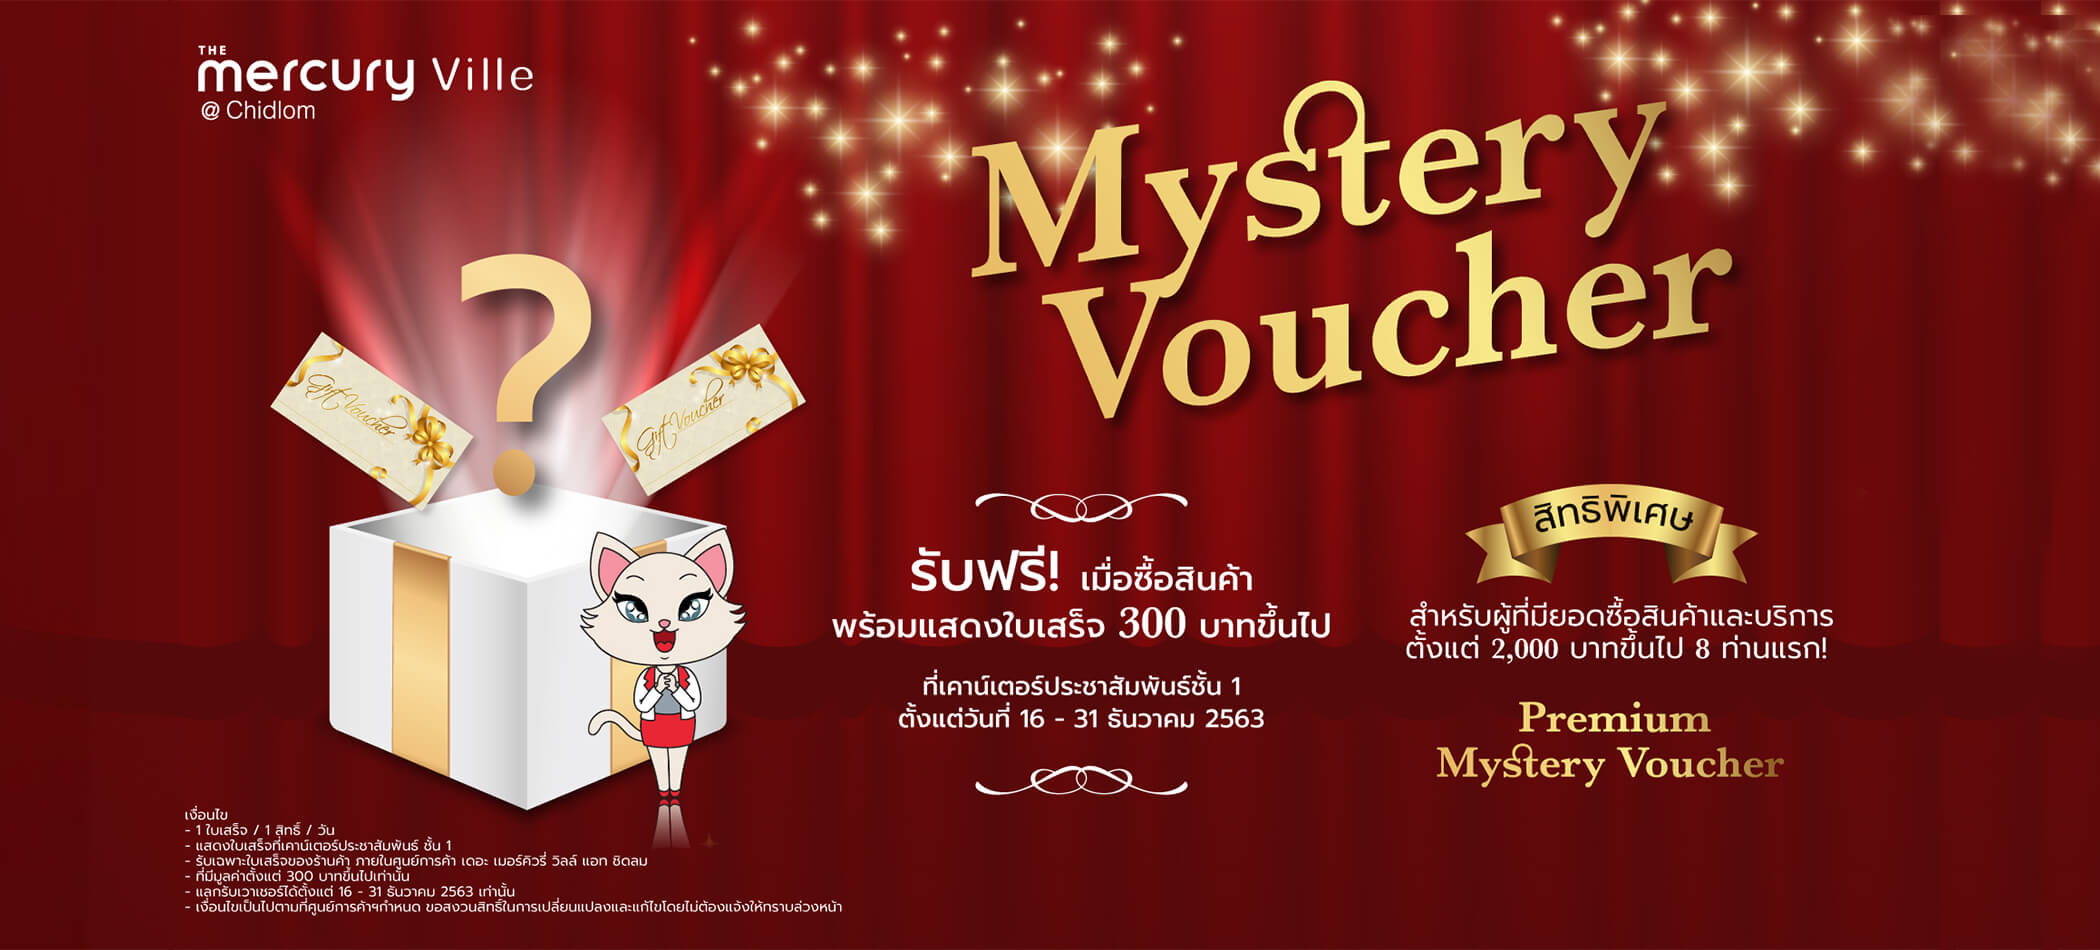 Spending every 300 THB get 1 privilege for Mystery Voucher FREE!